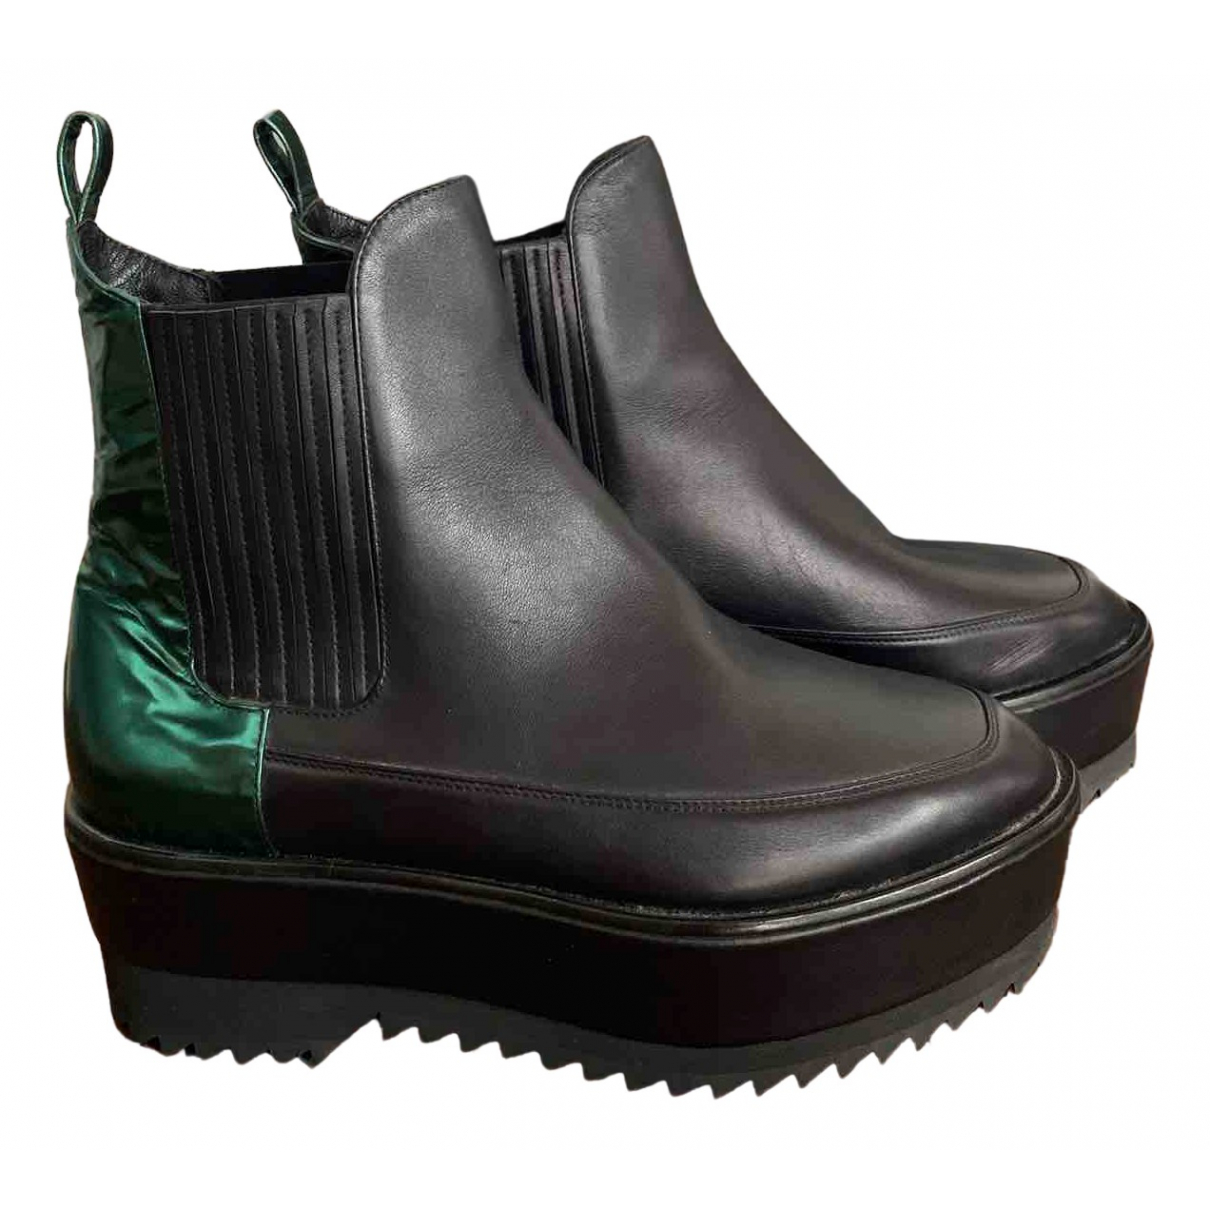 Damir Doma N Black Leather Ankle boots for Women 38 EU